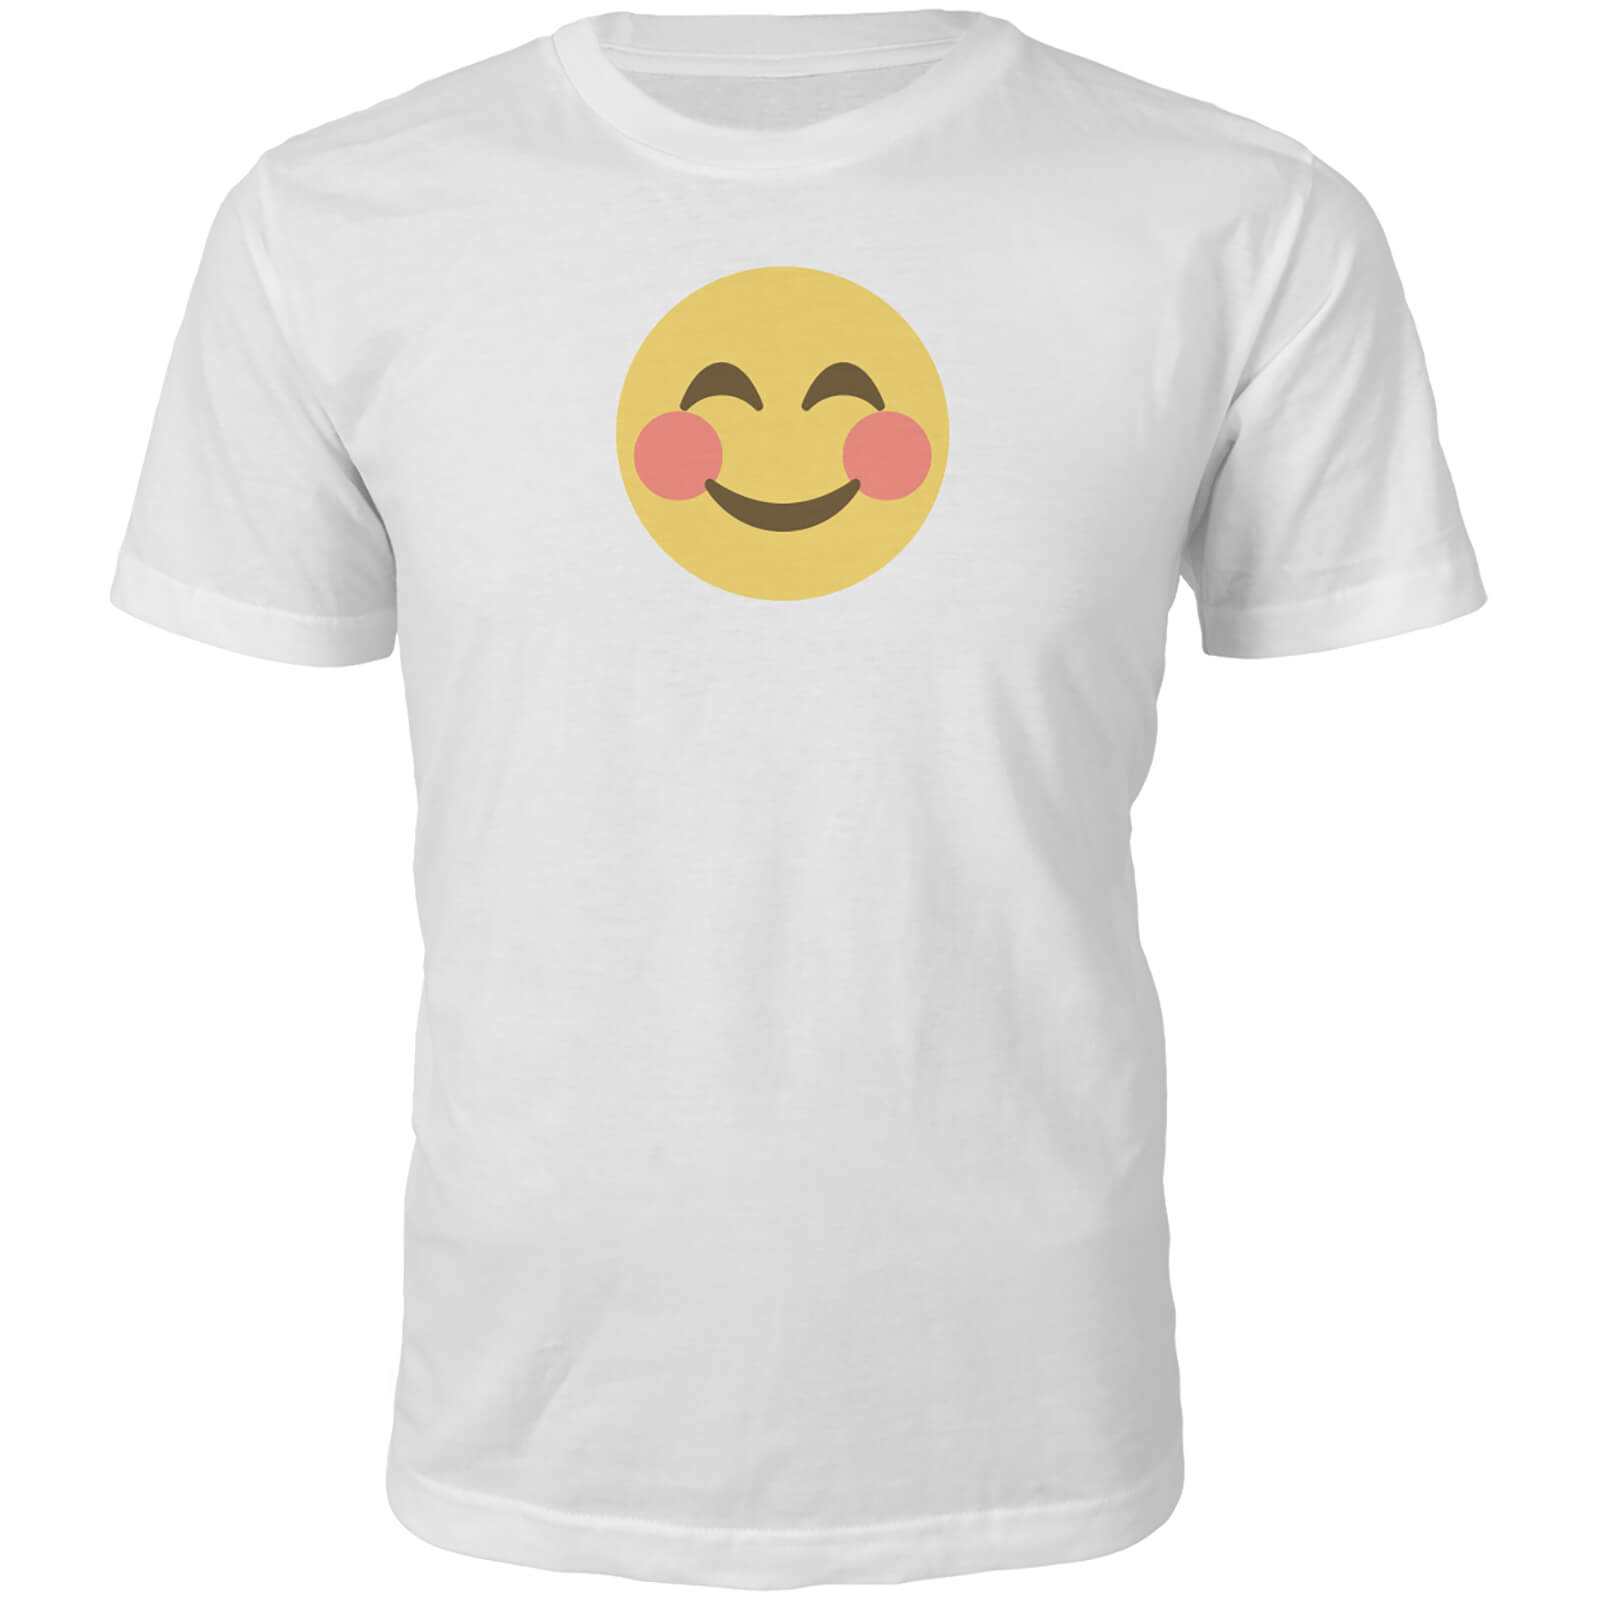 Emoji Unisex Blush Face T-Shirt - White